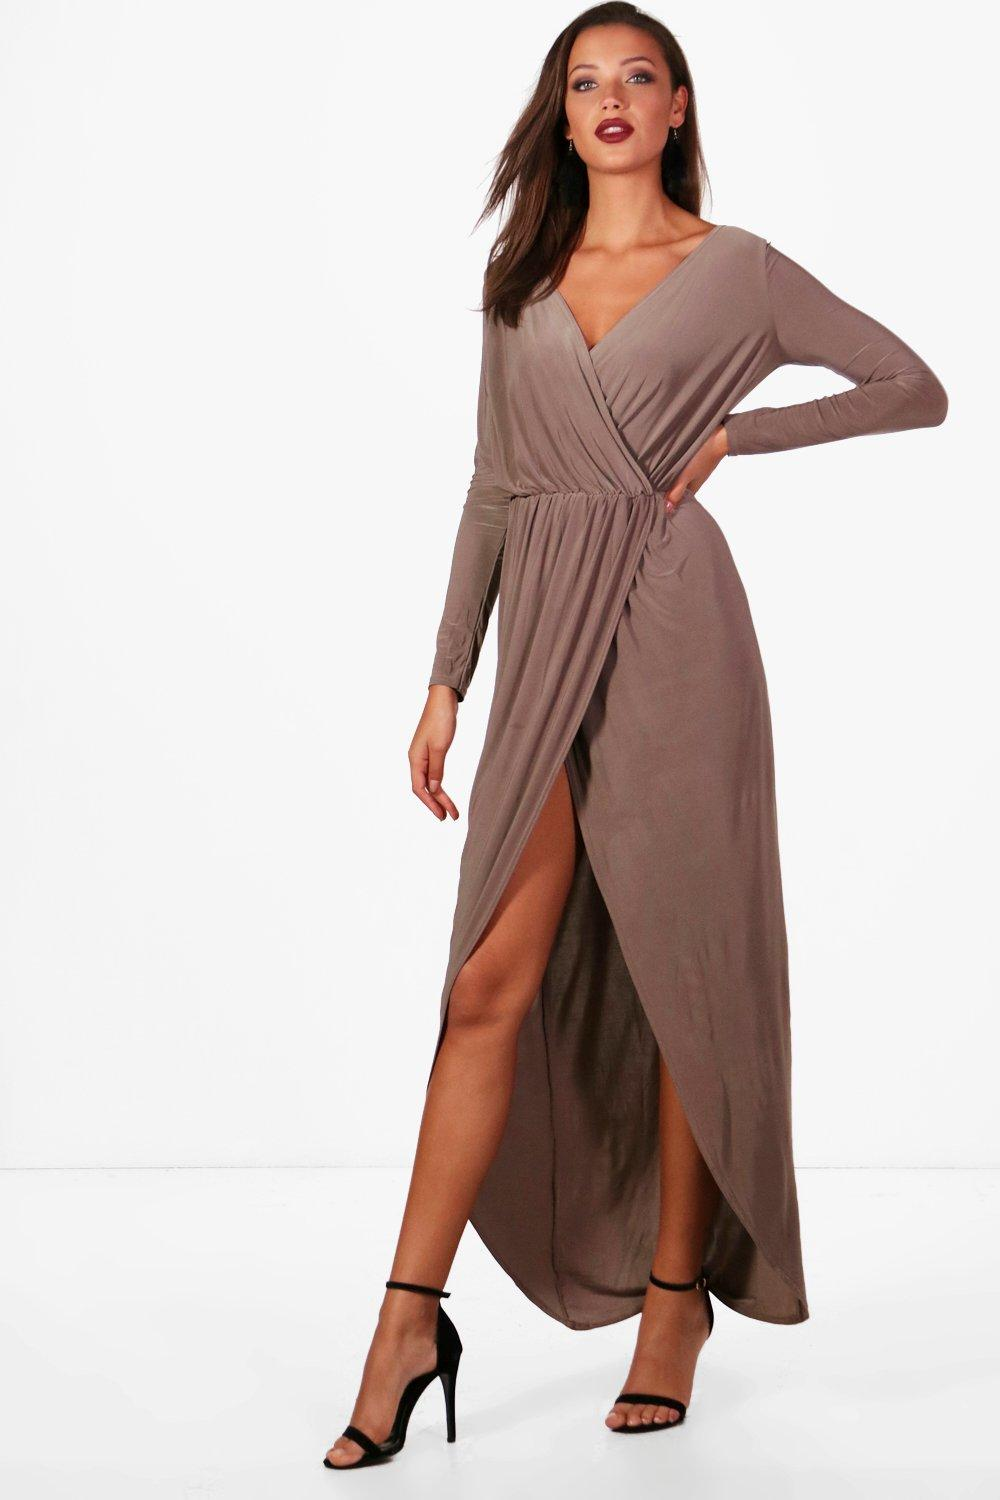 Find great deals on eBay for womens tall maxi dress. Shop with confidence.